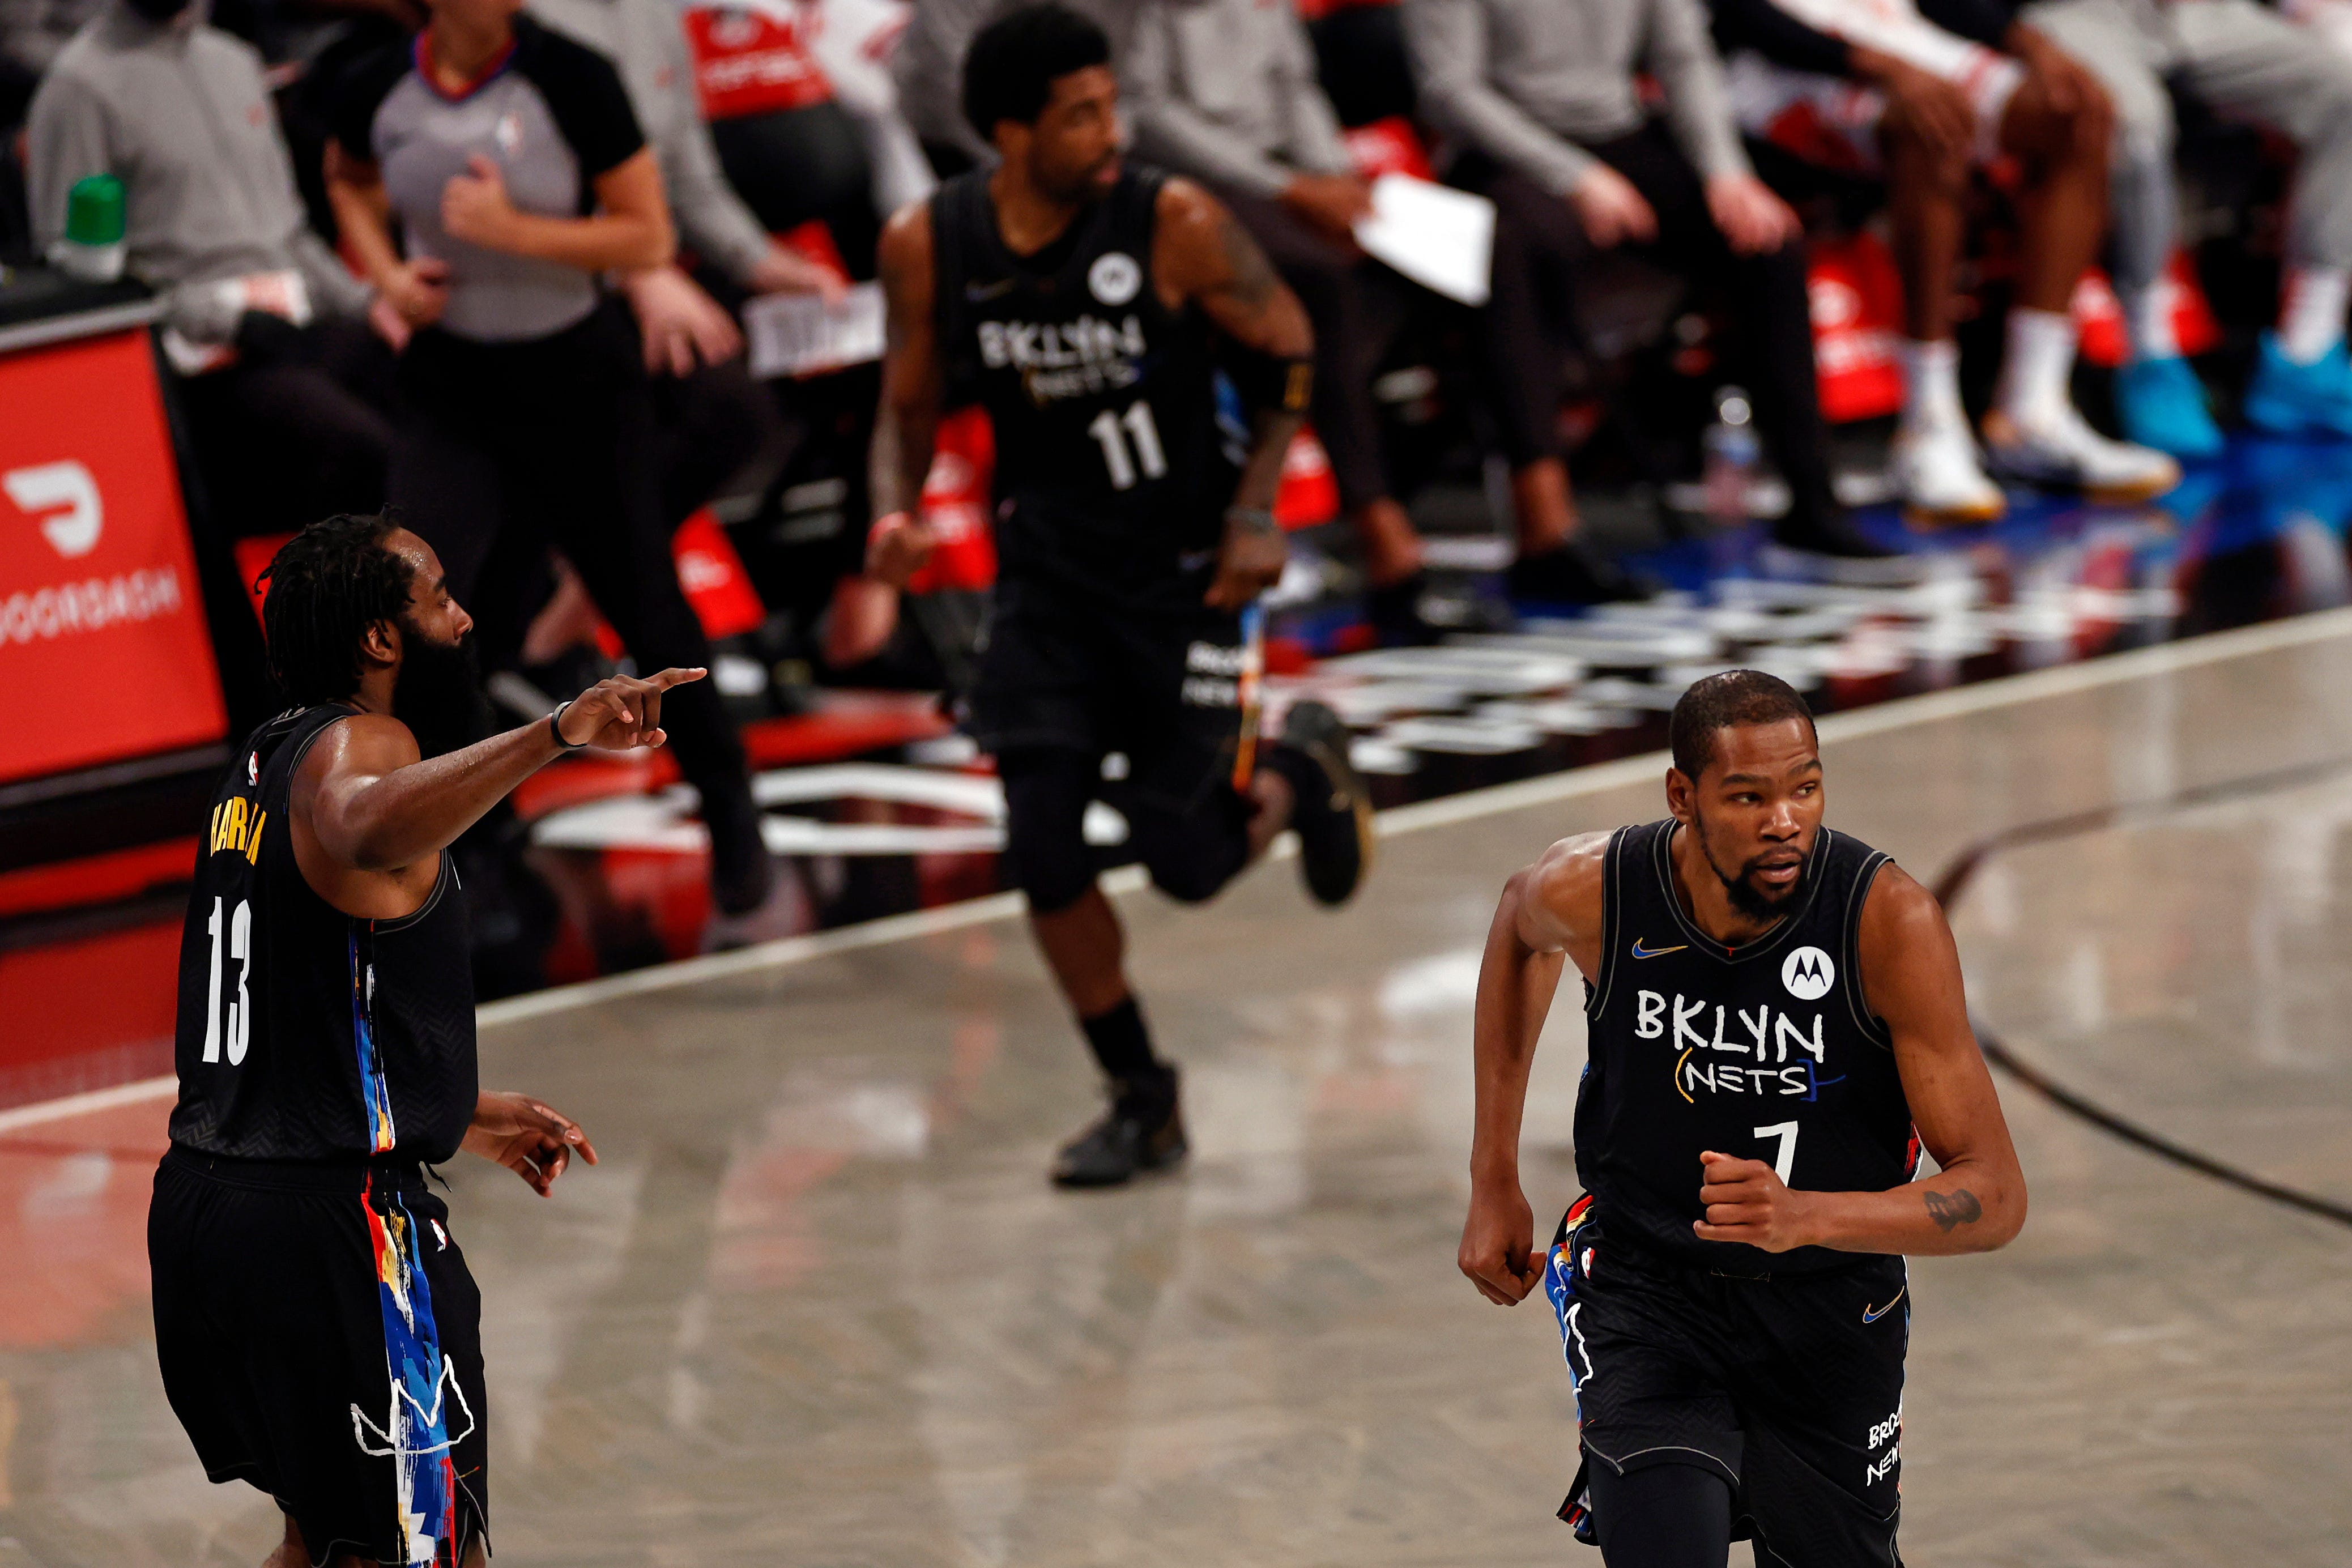 The Nets' All-Star trio of James Harden, Kyrie Irving and Kevin Durant played together last week for the first time since February.